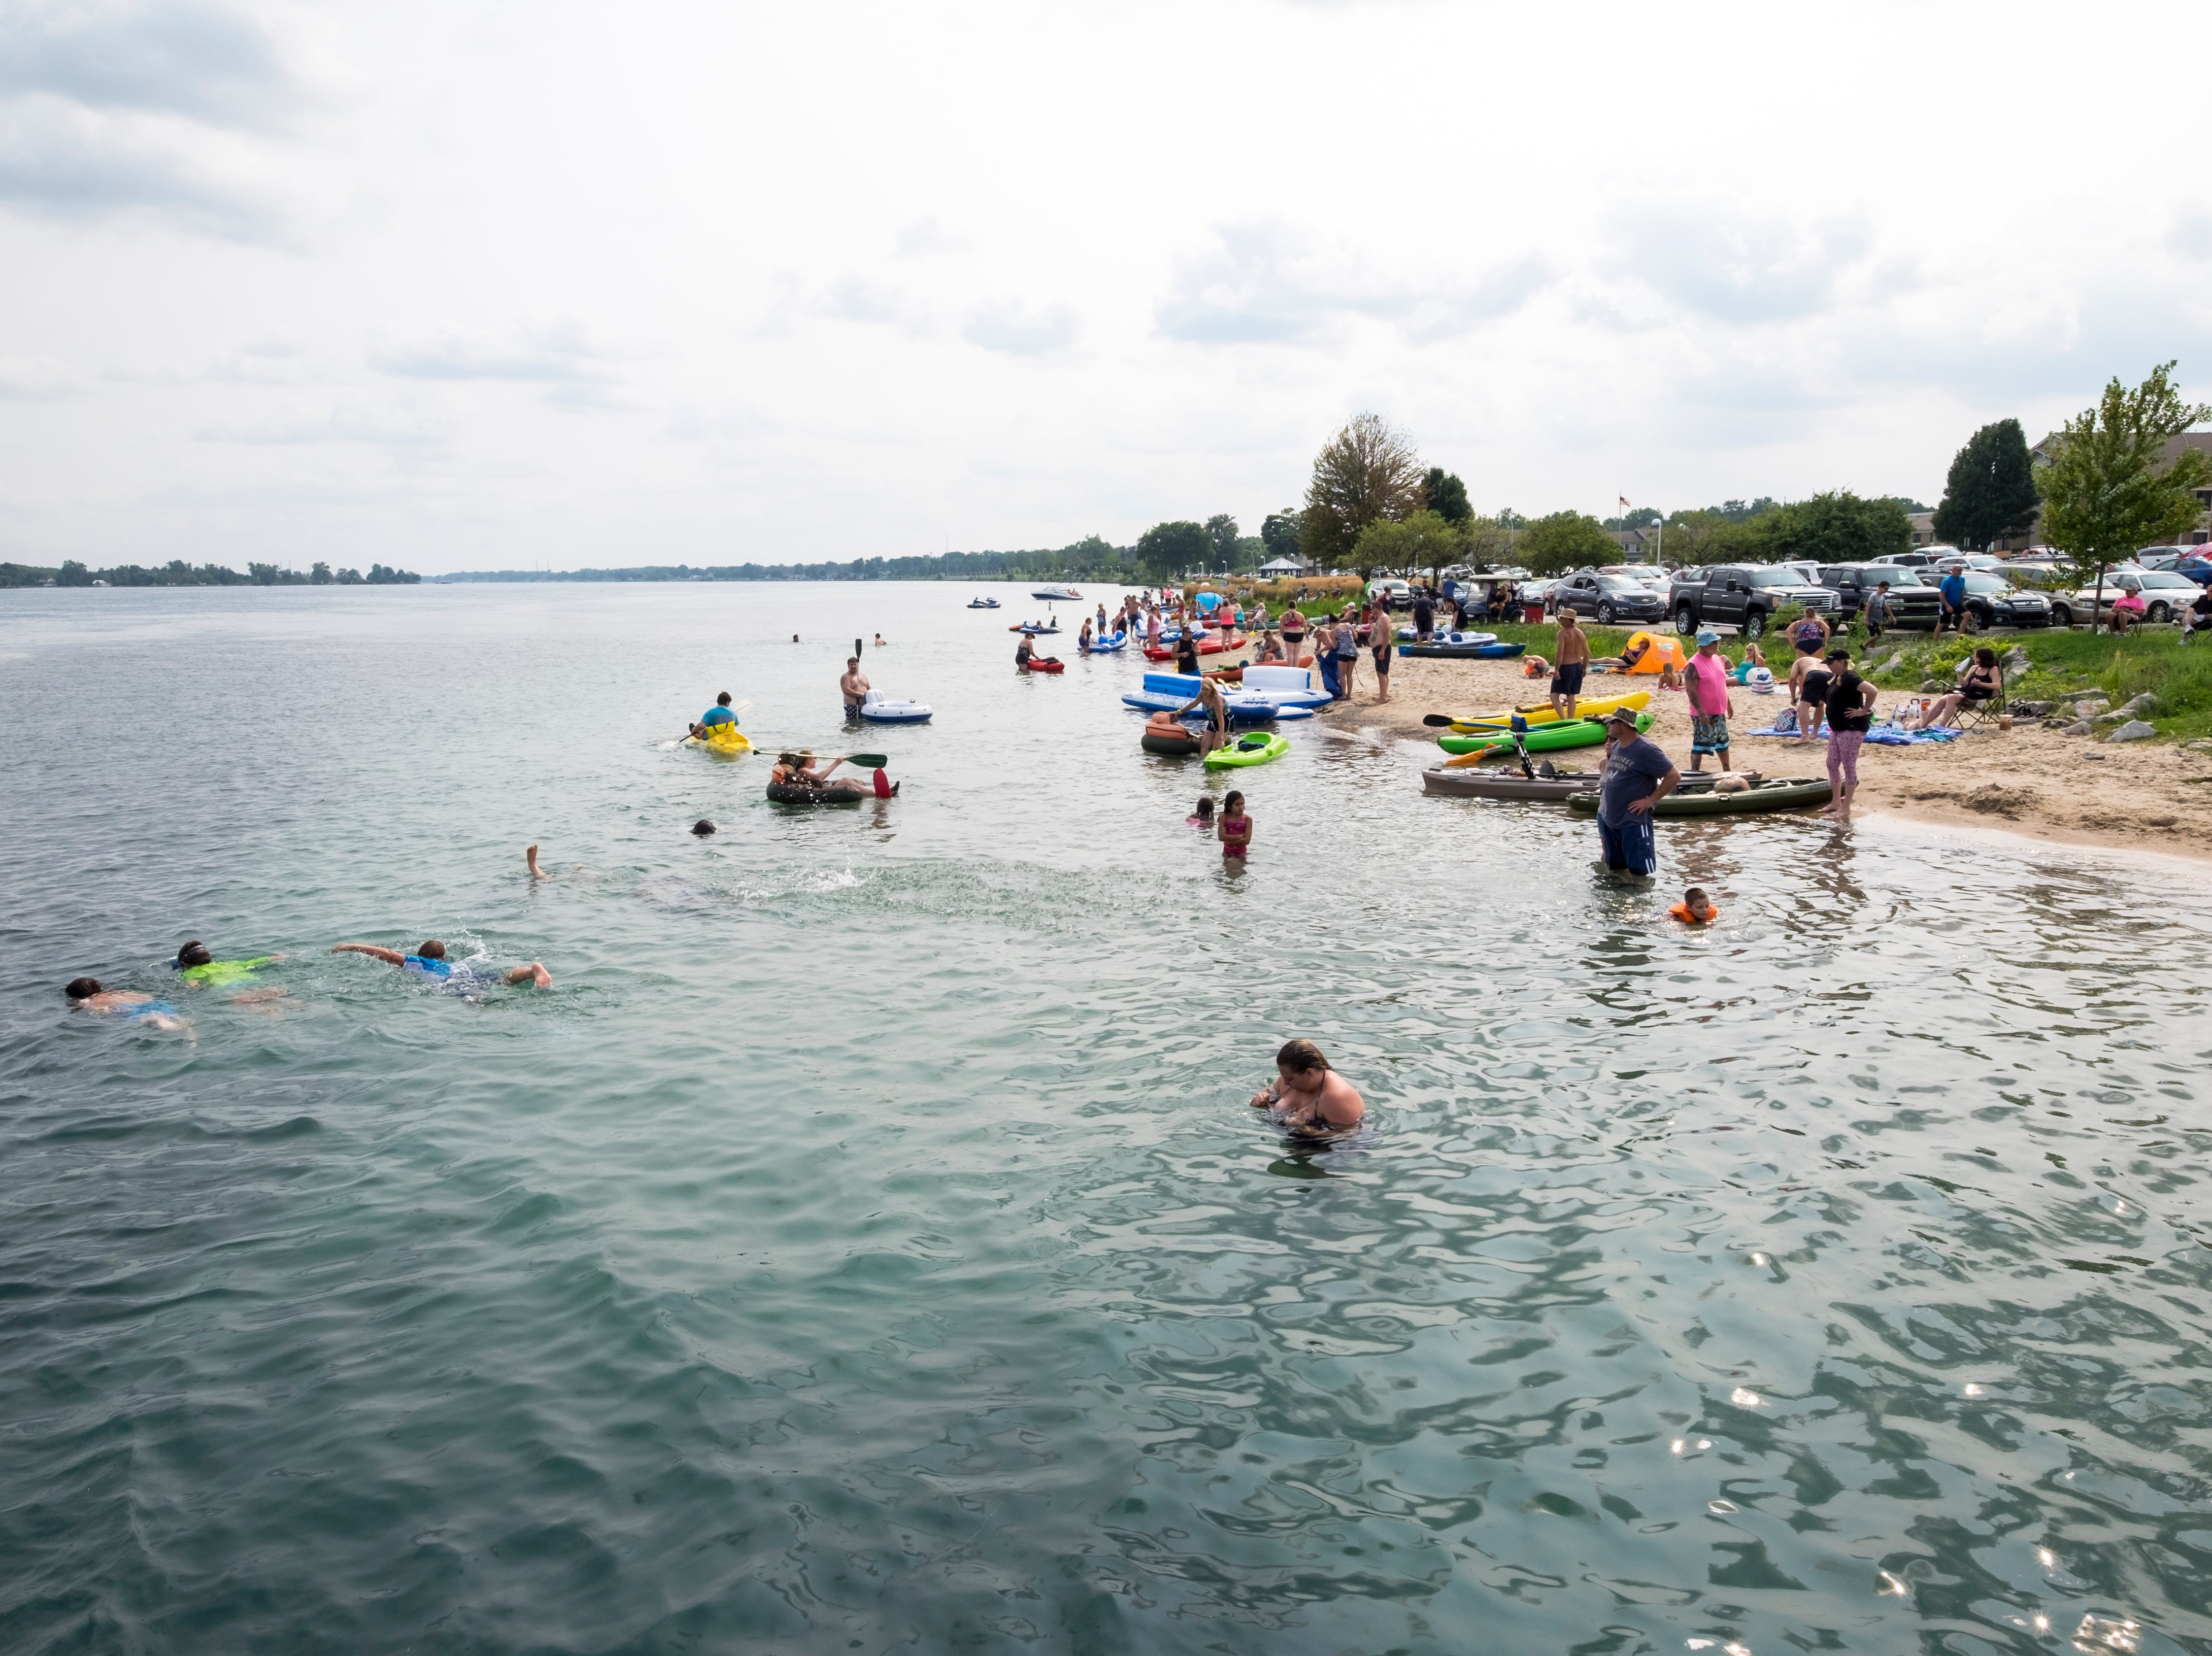 The first groups of Float Down participants arrive at Chrysler Beach in Marysville Sunday, Aug. 19, 2018.